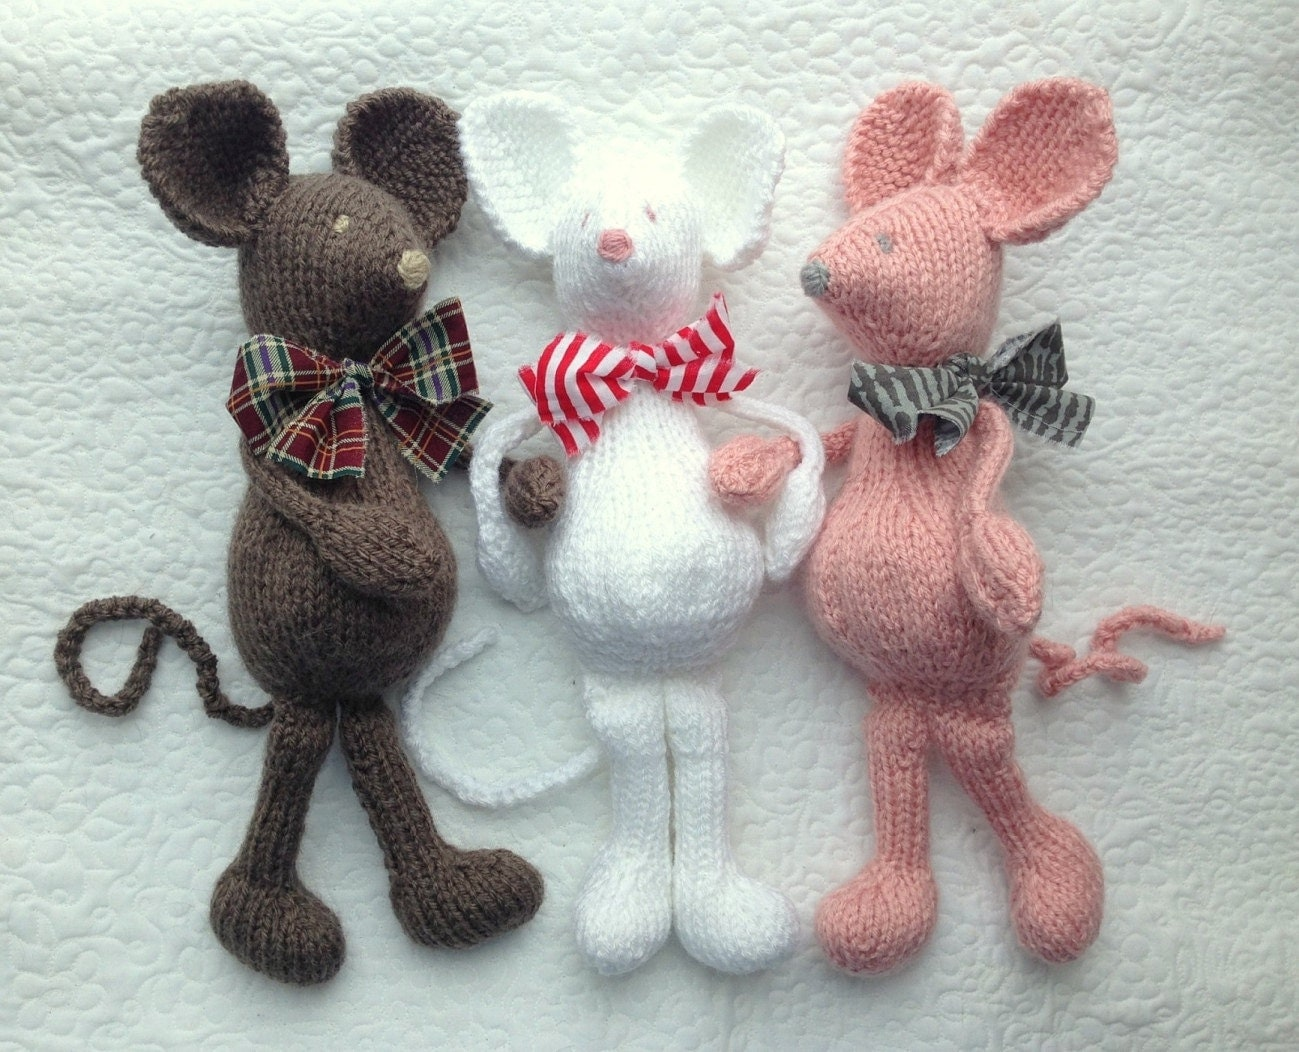 Soft Toy Patterns : Mouse knitting pattern soft toy pdf only heirloom